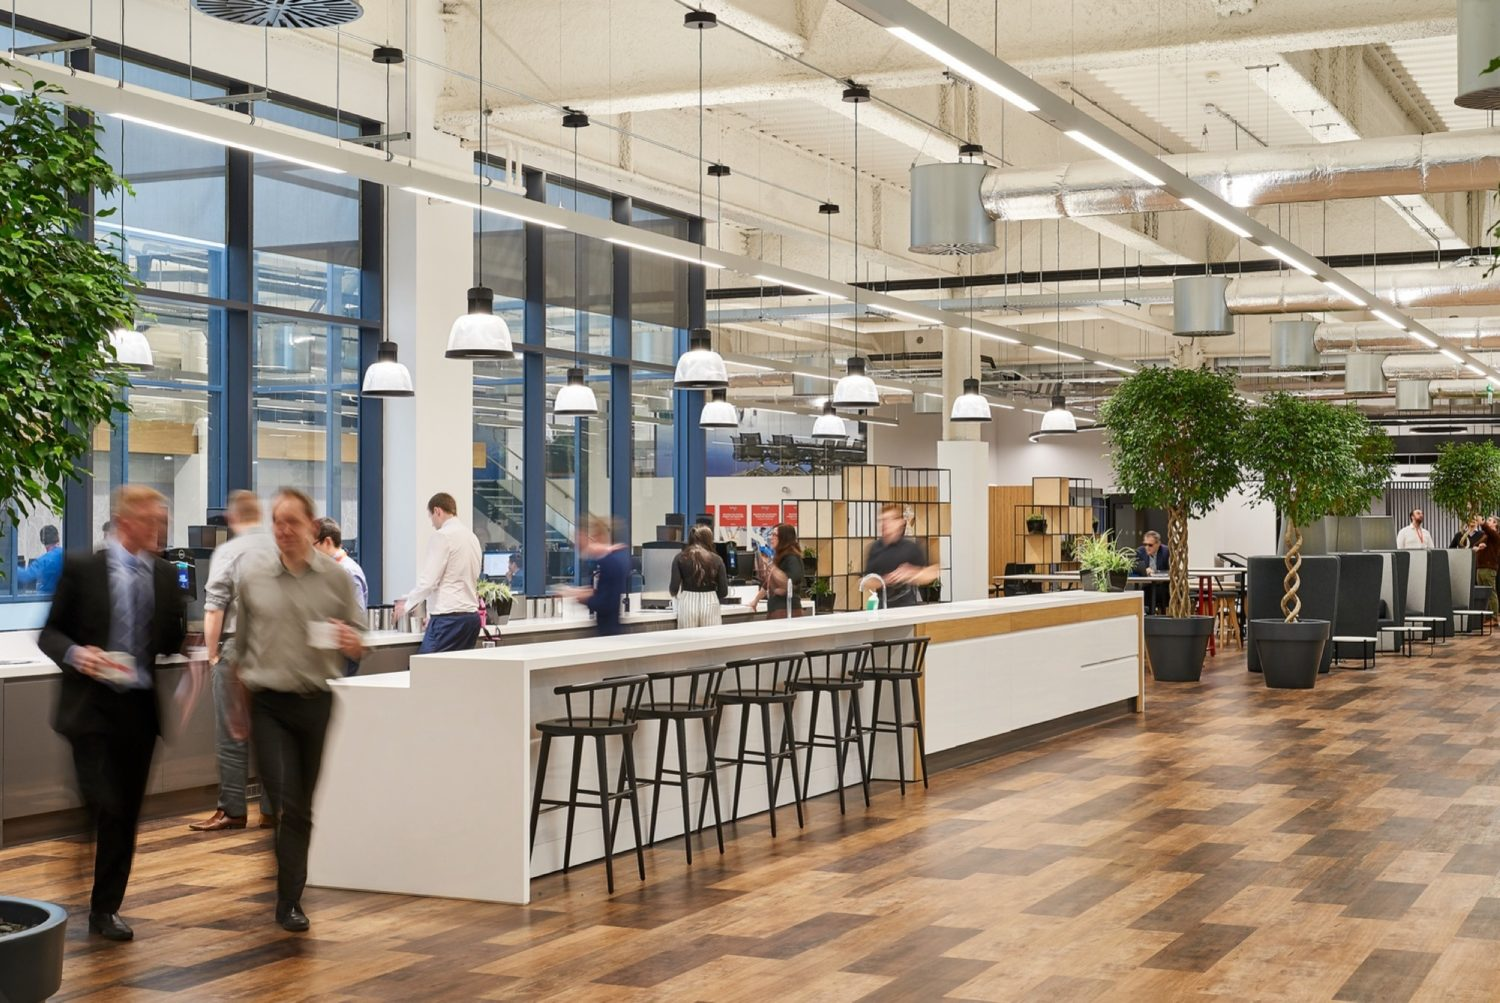 WSP breakout area fit out for wellbeing